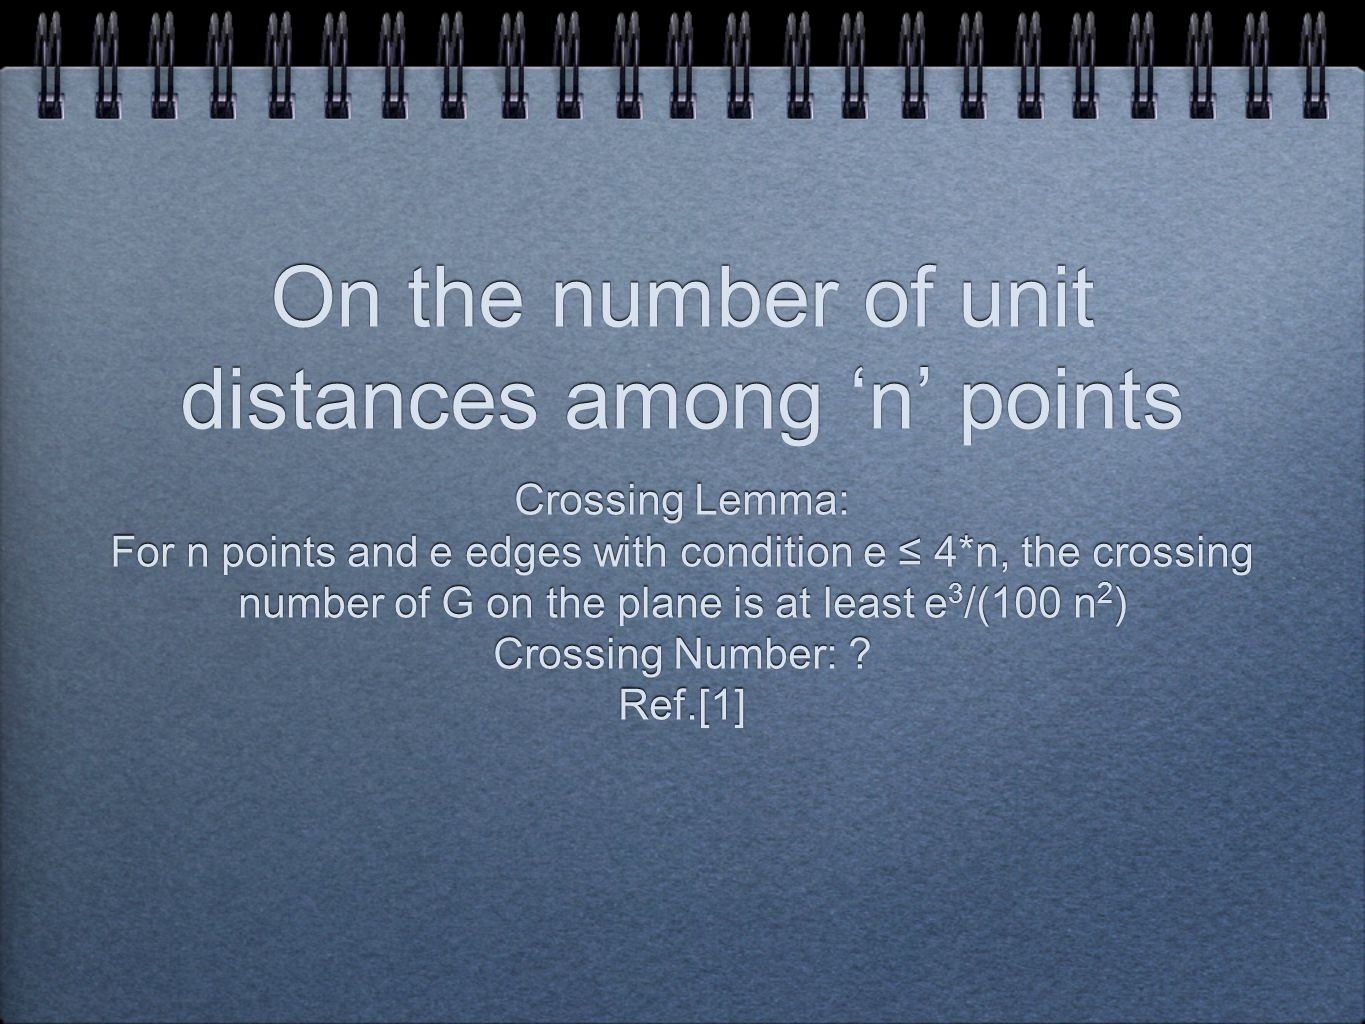 On the number of unit distances among 'n' points Crossing Lemma: For n points and e edges with condition e ≤ 4*n, the crossing number of G on the plane is at least e 3 /(100 n 2 ) Crossing Number: .